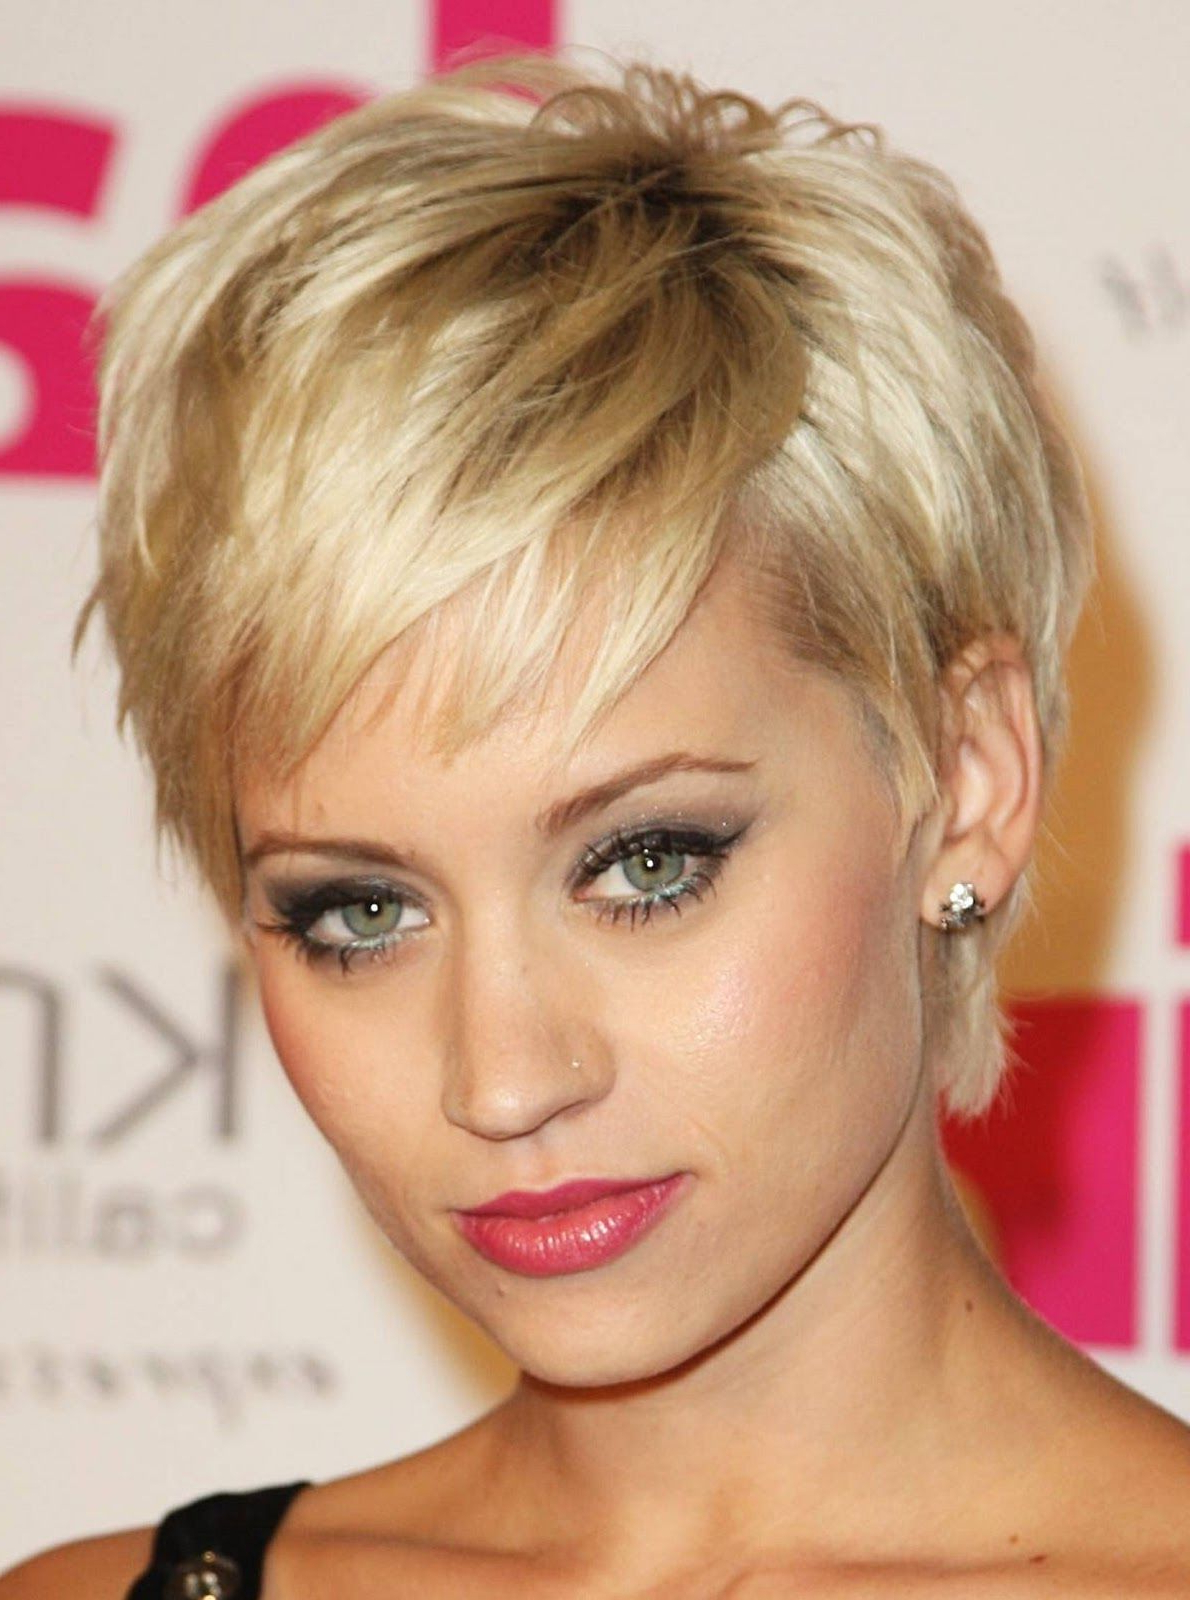 Short Hairstyles For Older Women | Beauty | Pinterest | Short Hair With Choppy Short Hairstyles For Older Women (View 6 of 25)